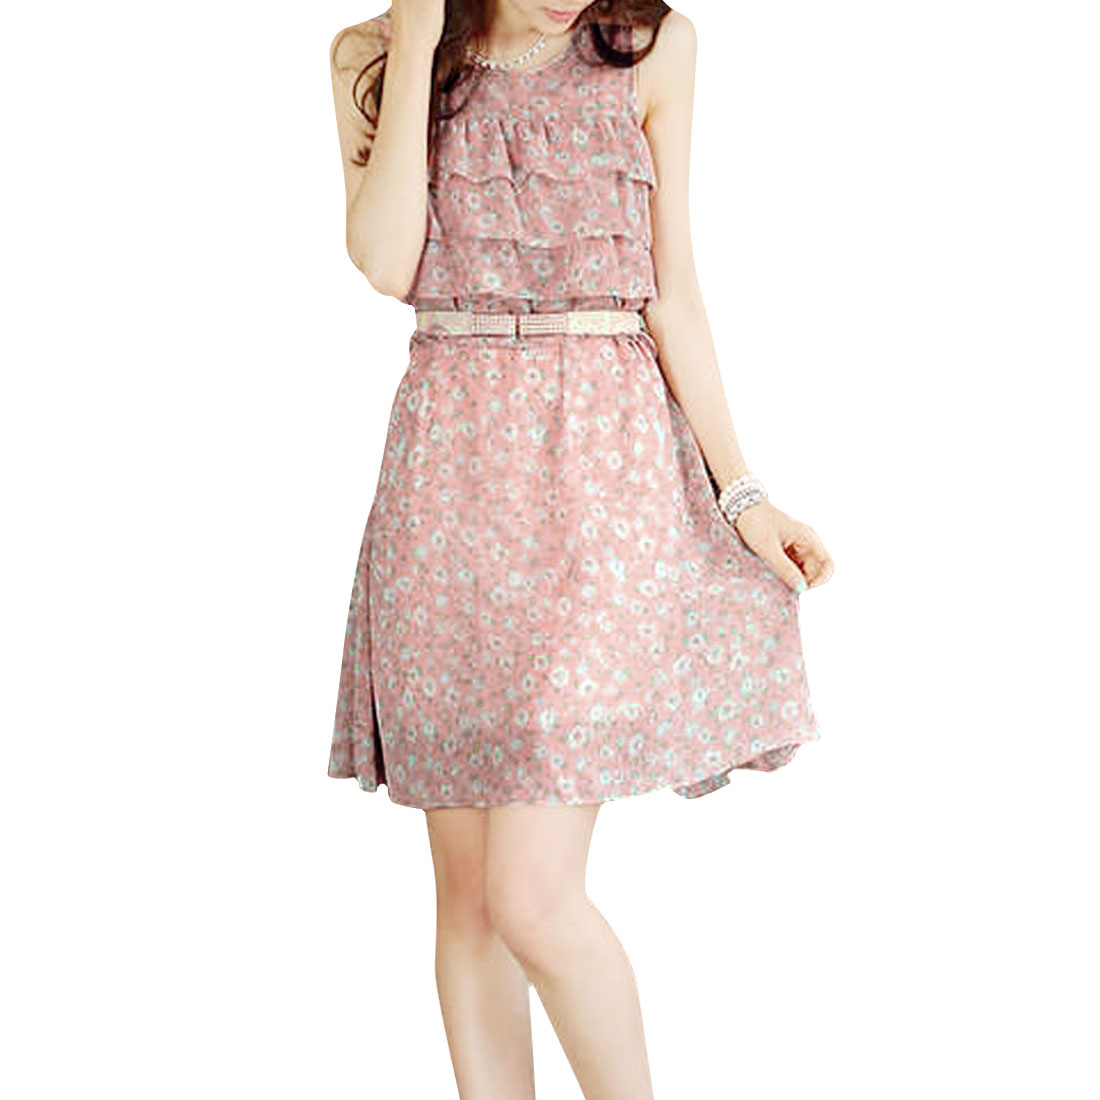 Woman Newly Round Neck Sleeveless Floral Pattern Pale Pink Knee-Length Dress XS